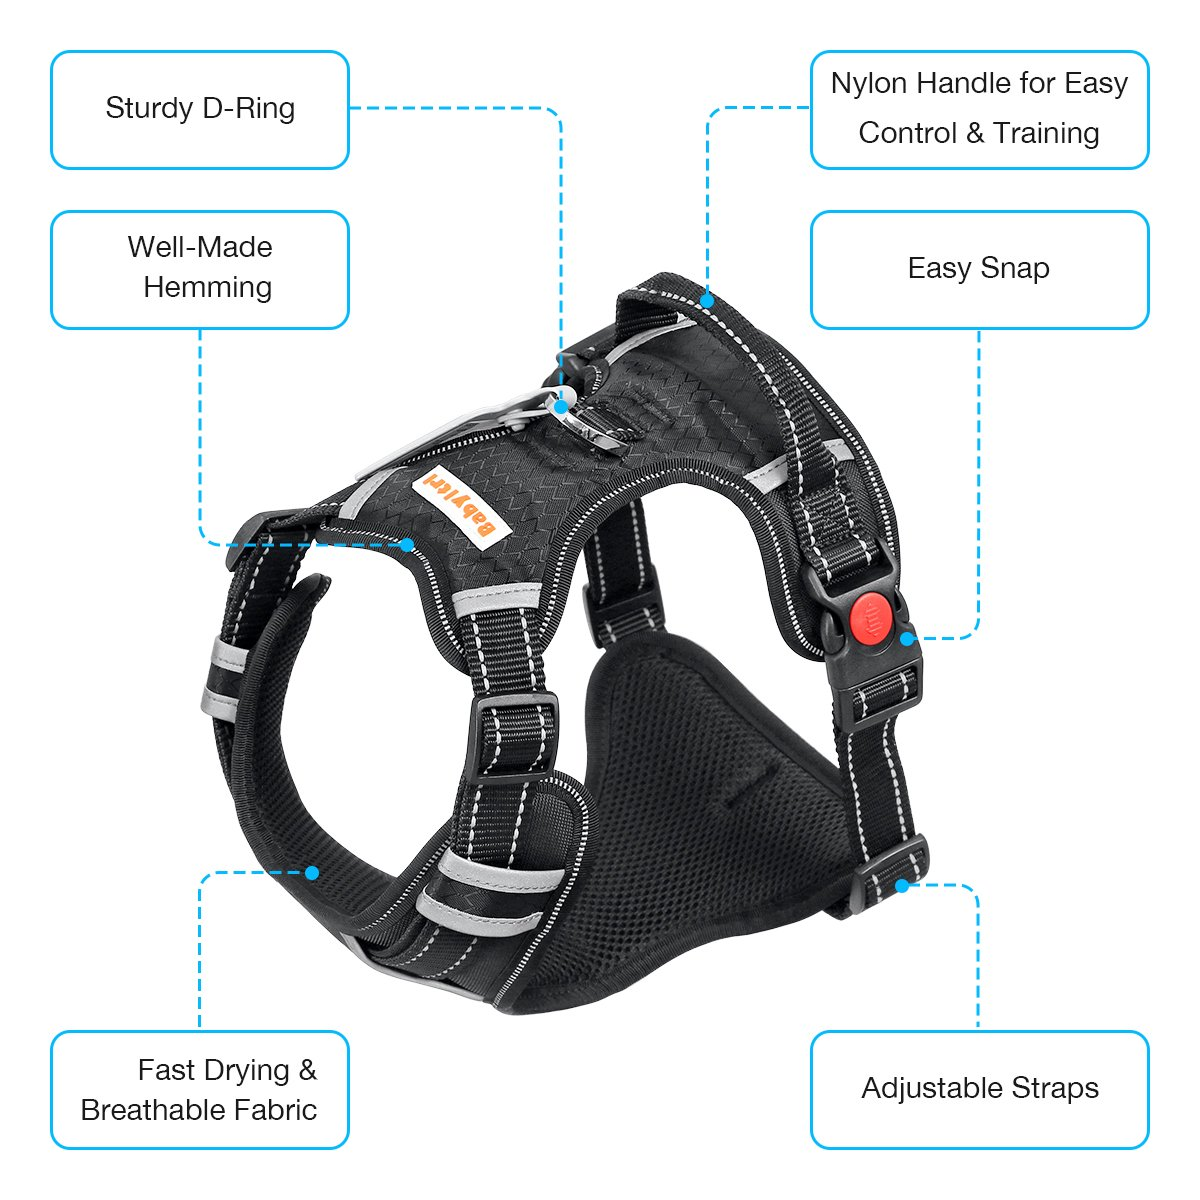 Big Dog Harness No Pull Adjustable Pet Reflective Oxford Soft Vest for Large Dogs Easy Control Harness by Babyltrl (Image #2)